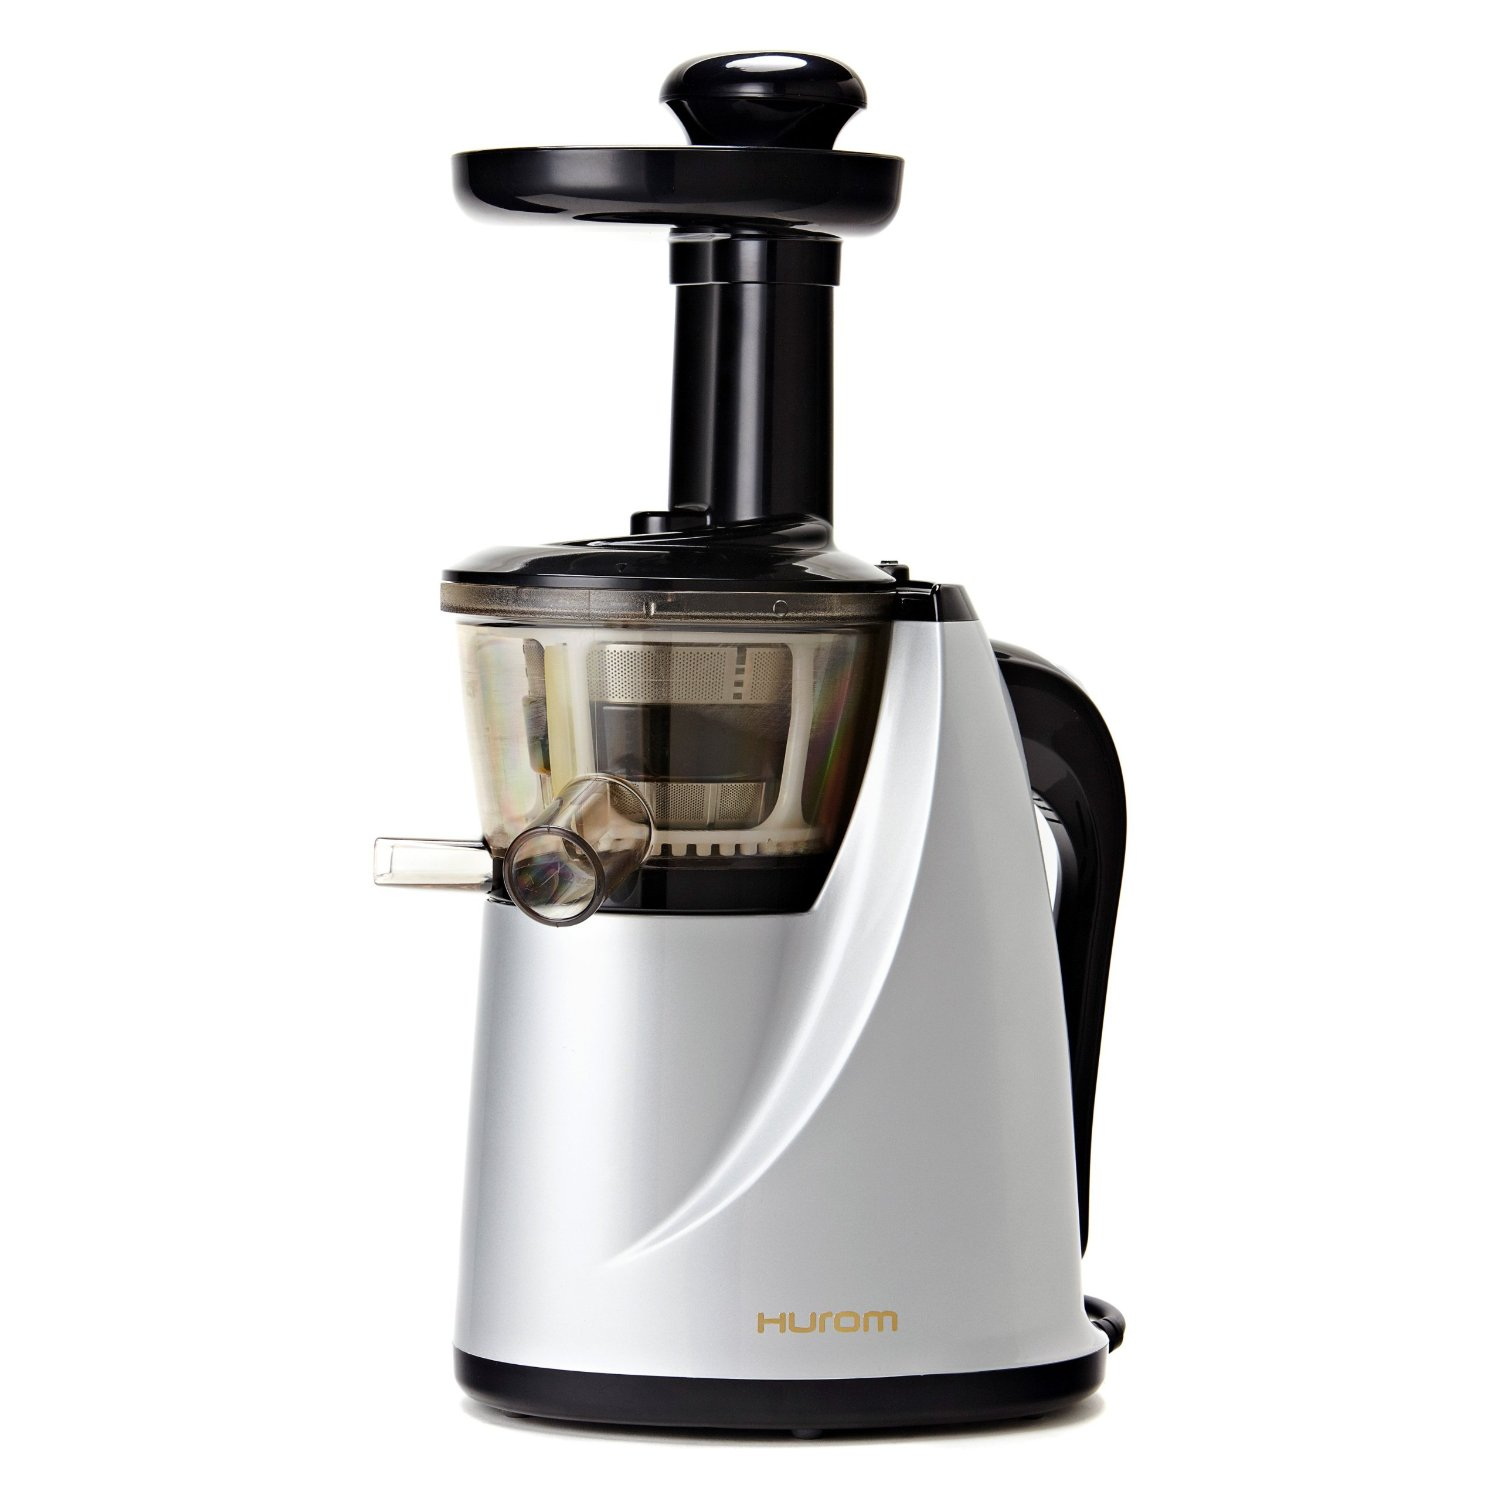 Slow Juicer Omega Vs Hurom : Hurom HU-100 Masticating Slow Juicer Review - Best Cold Press Juicers